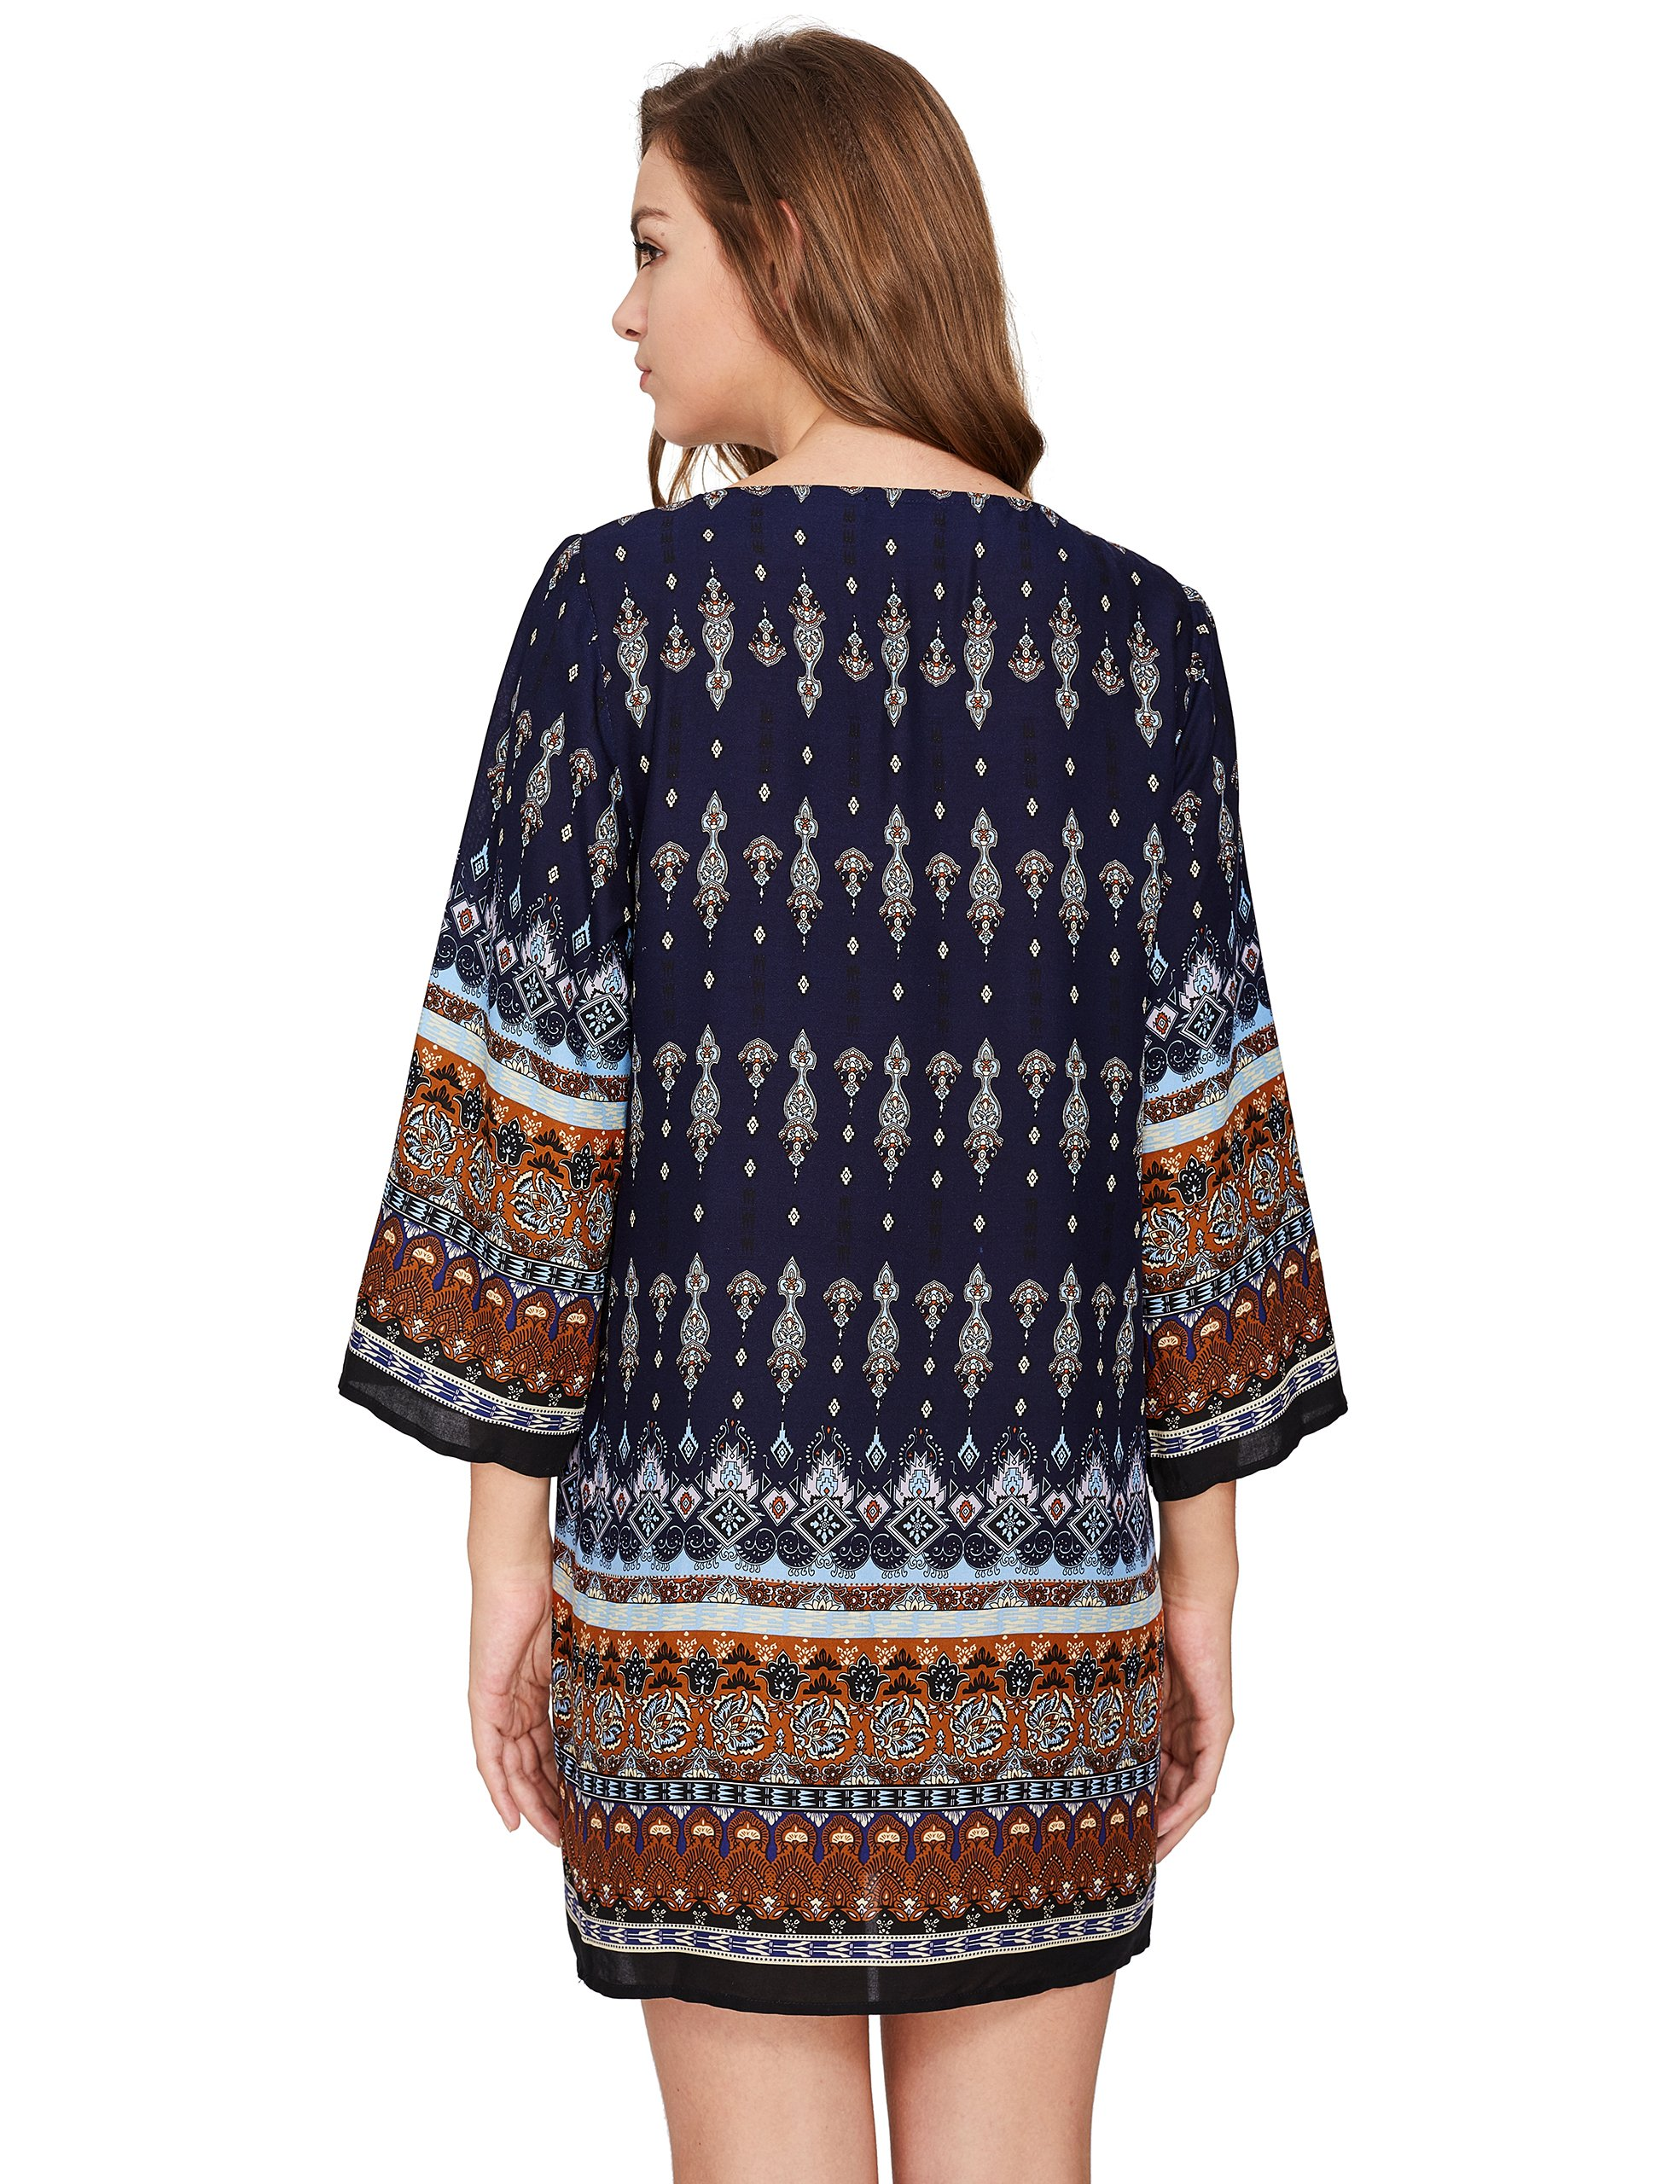 ROMWE Women's Boho Bohemian Tribal Print Summer Beach Dress Navy S by Romwe (Image #2)